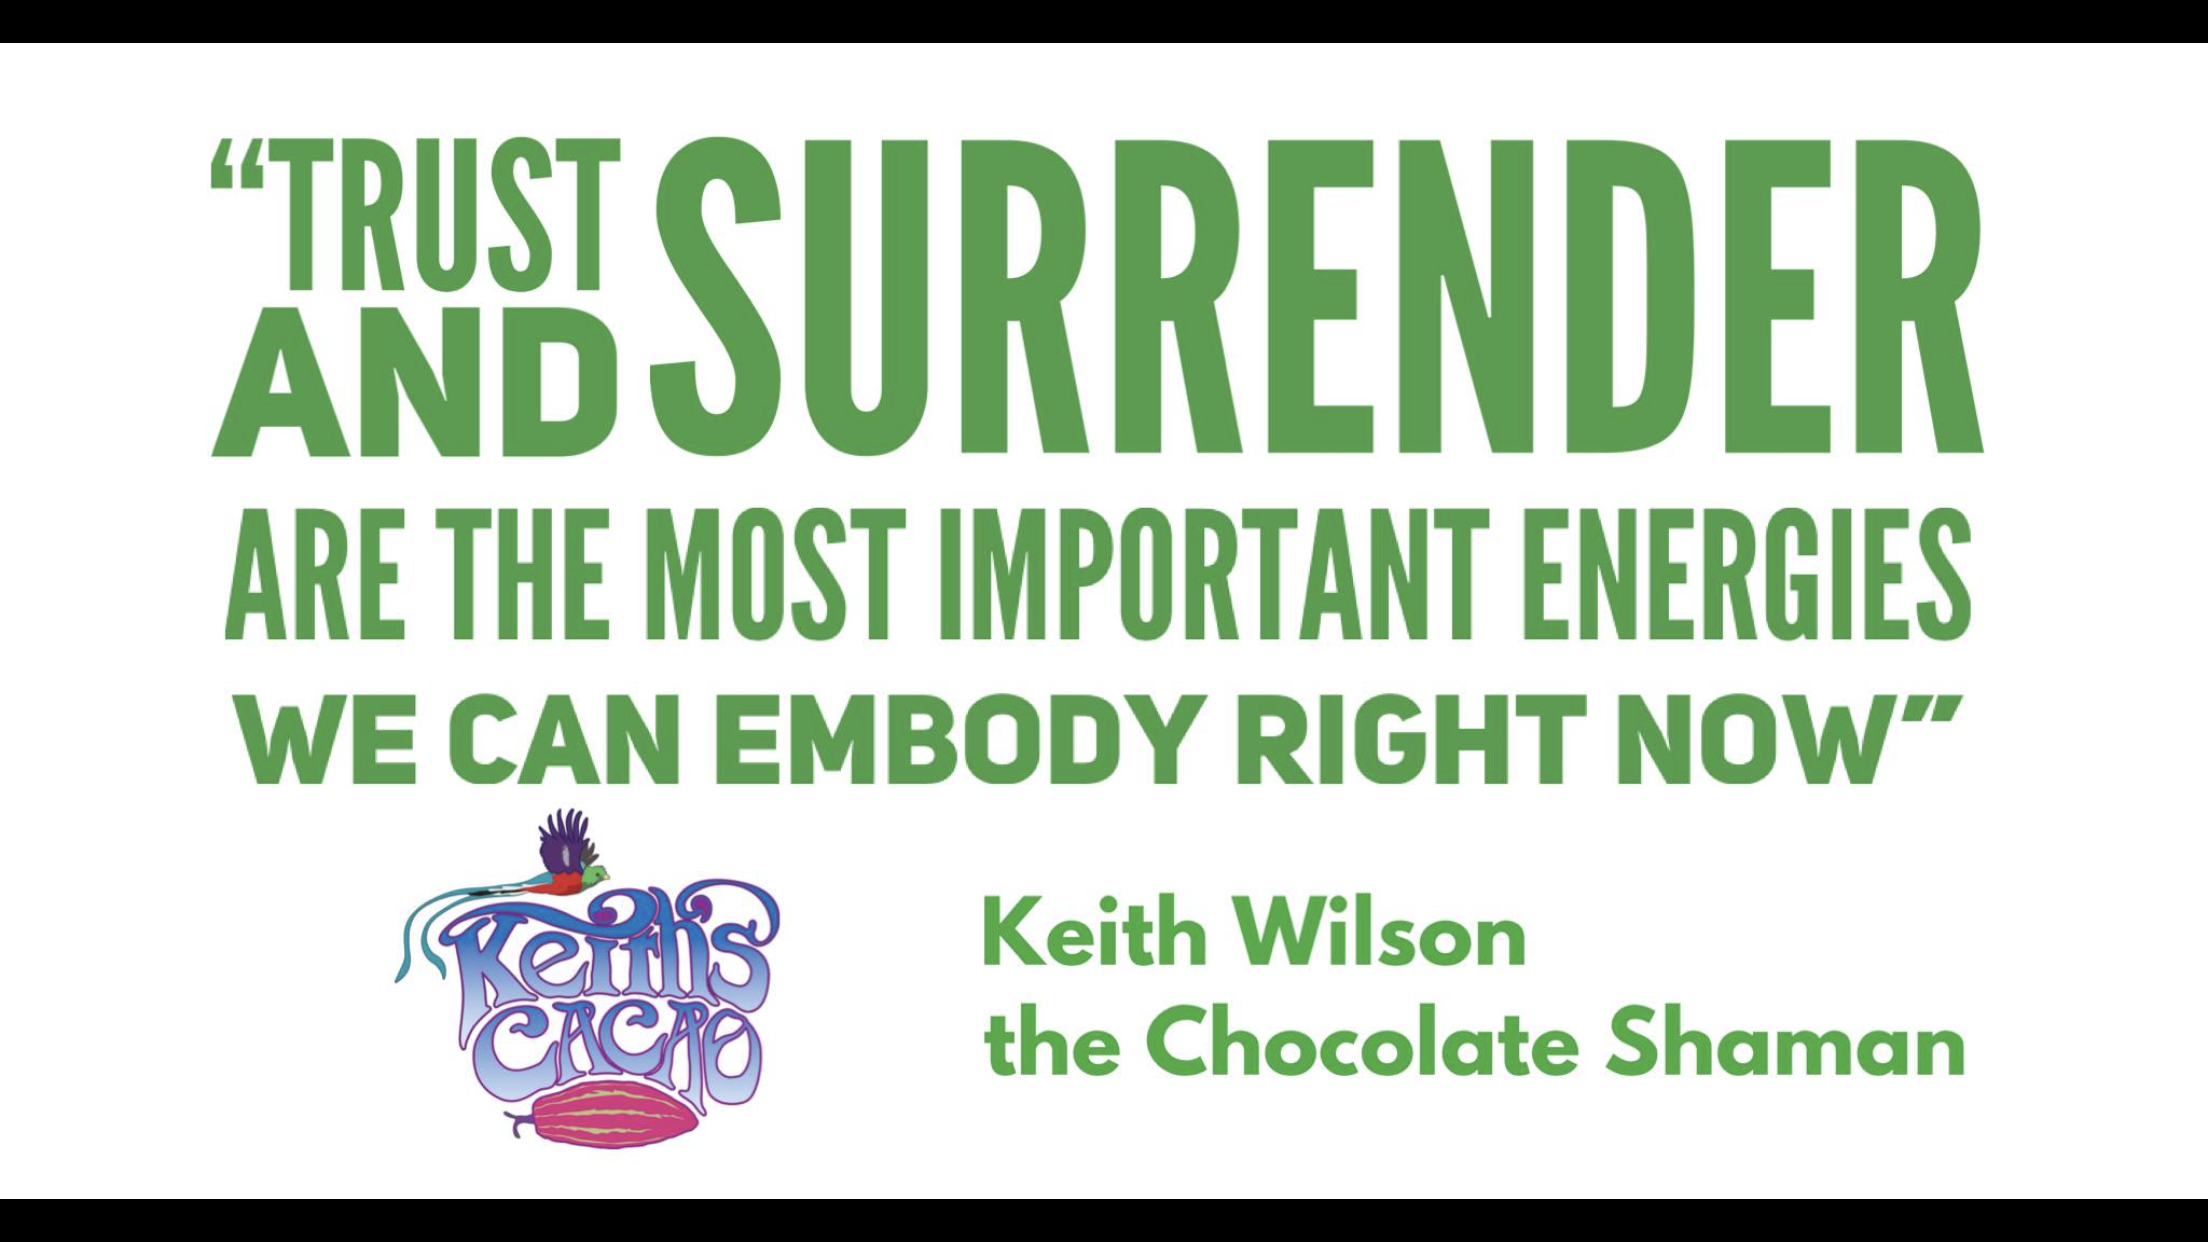 https://quantumsobriety.com/the-most-important-energies-we-can-embody/